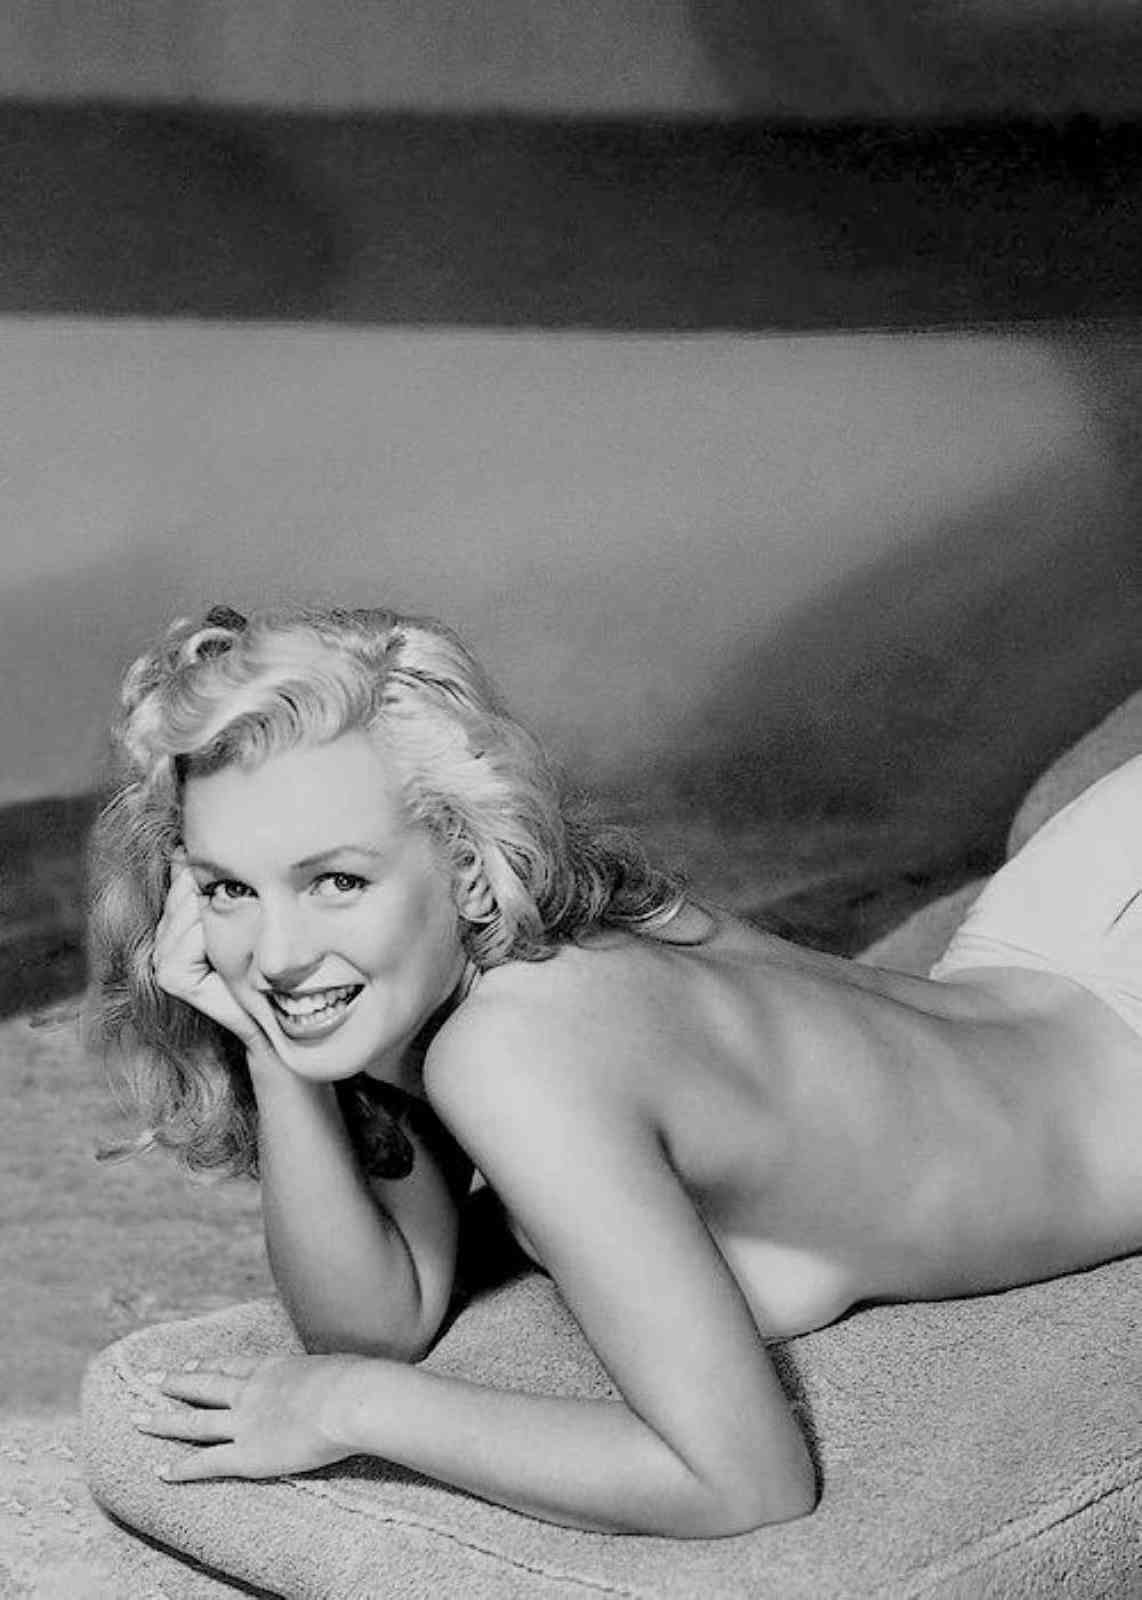 Lovely nude marilyn monroe, sugar rush lesbian video clip